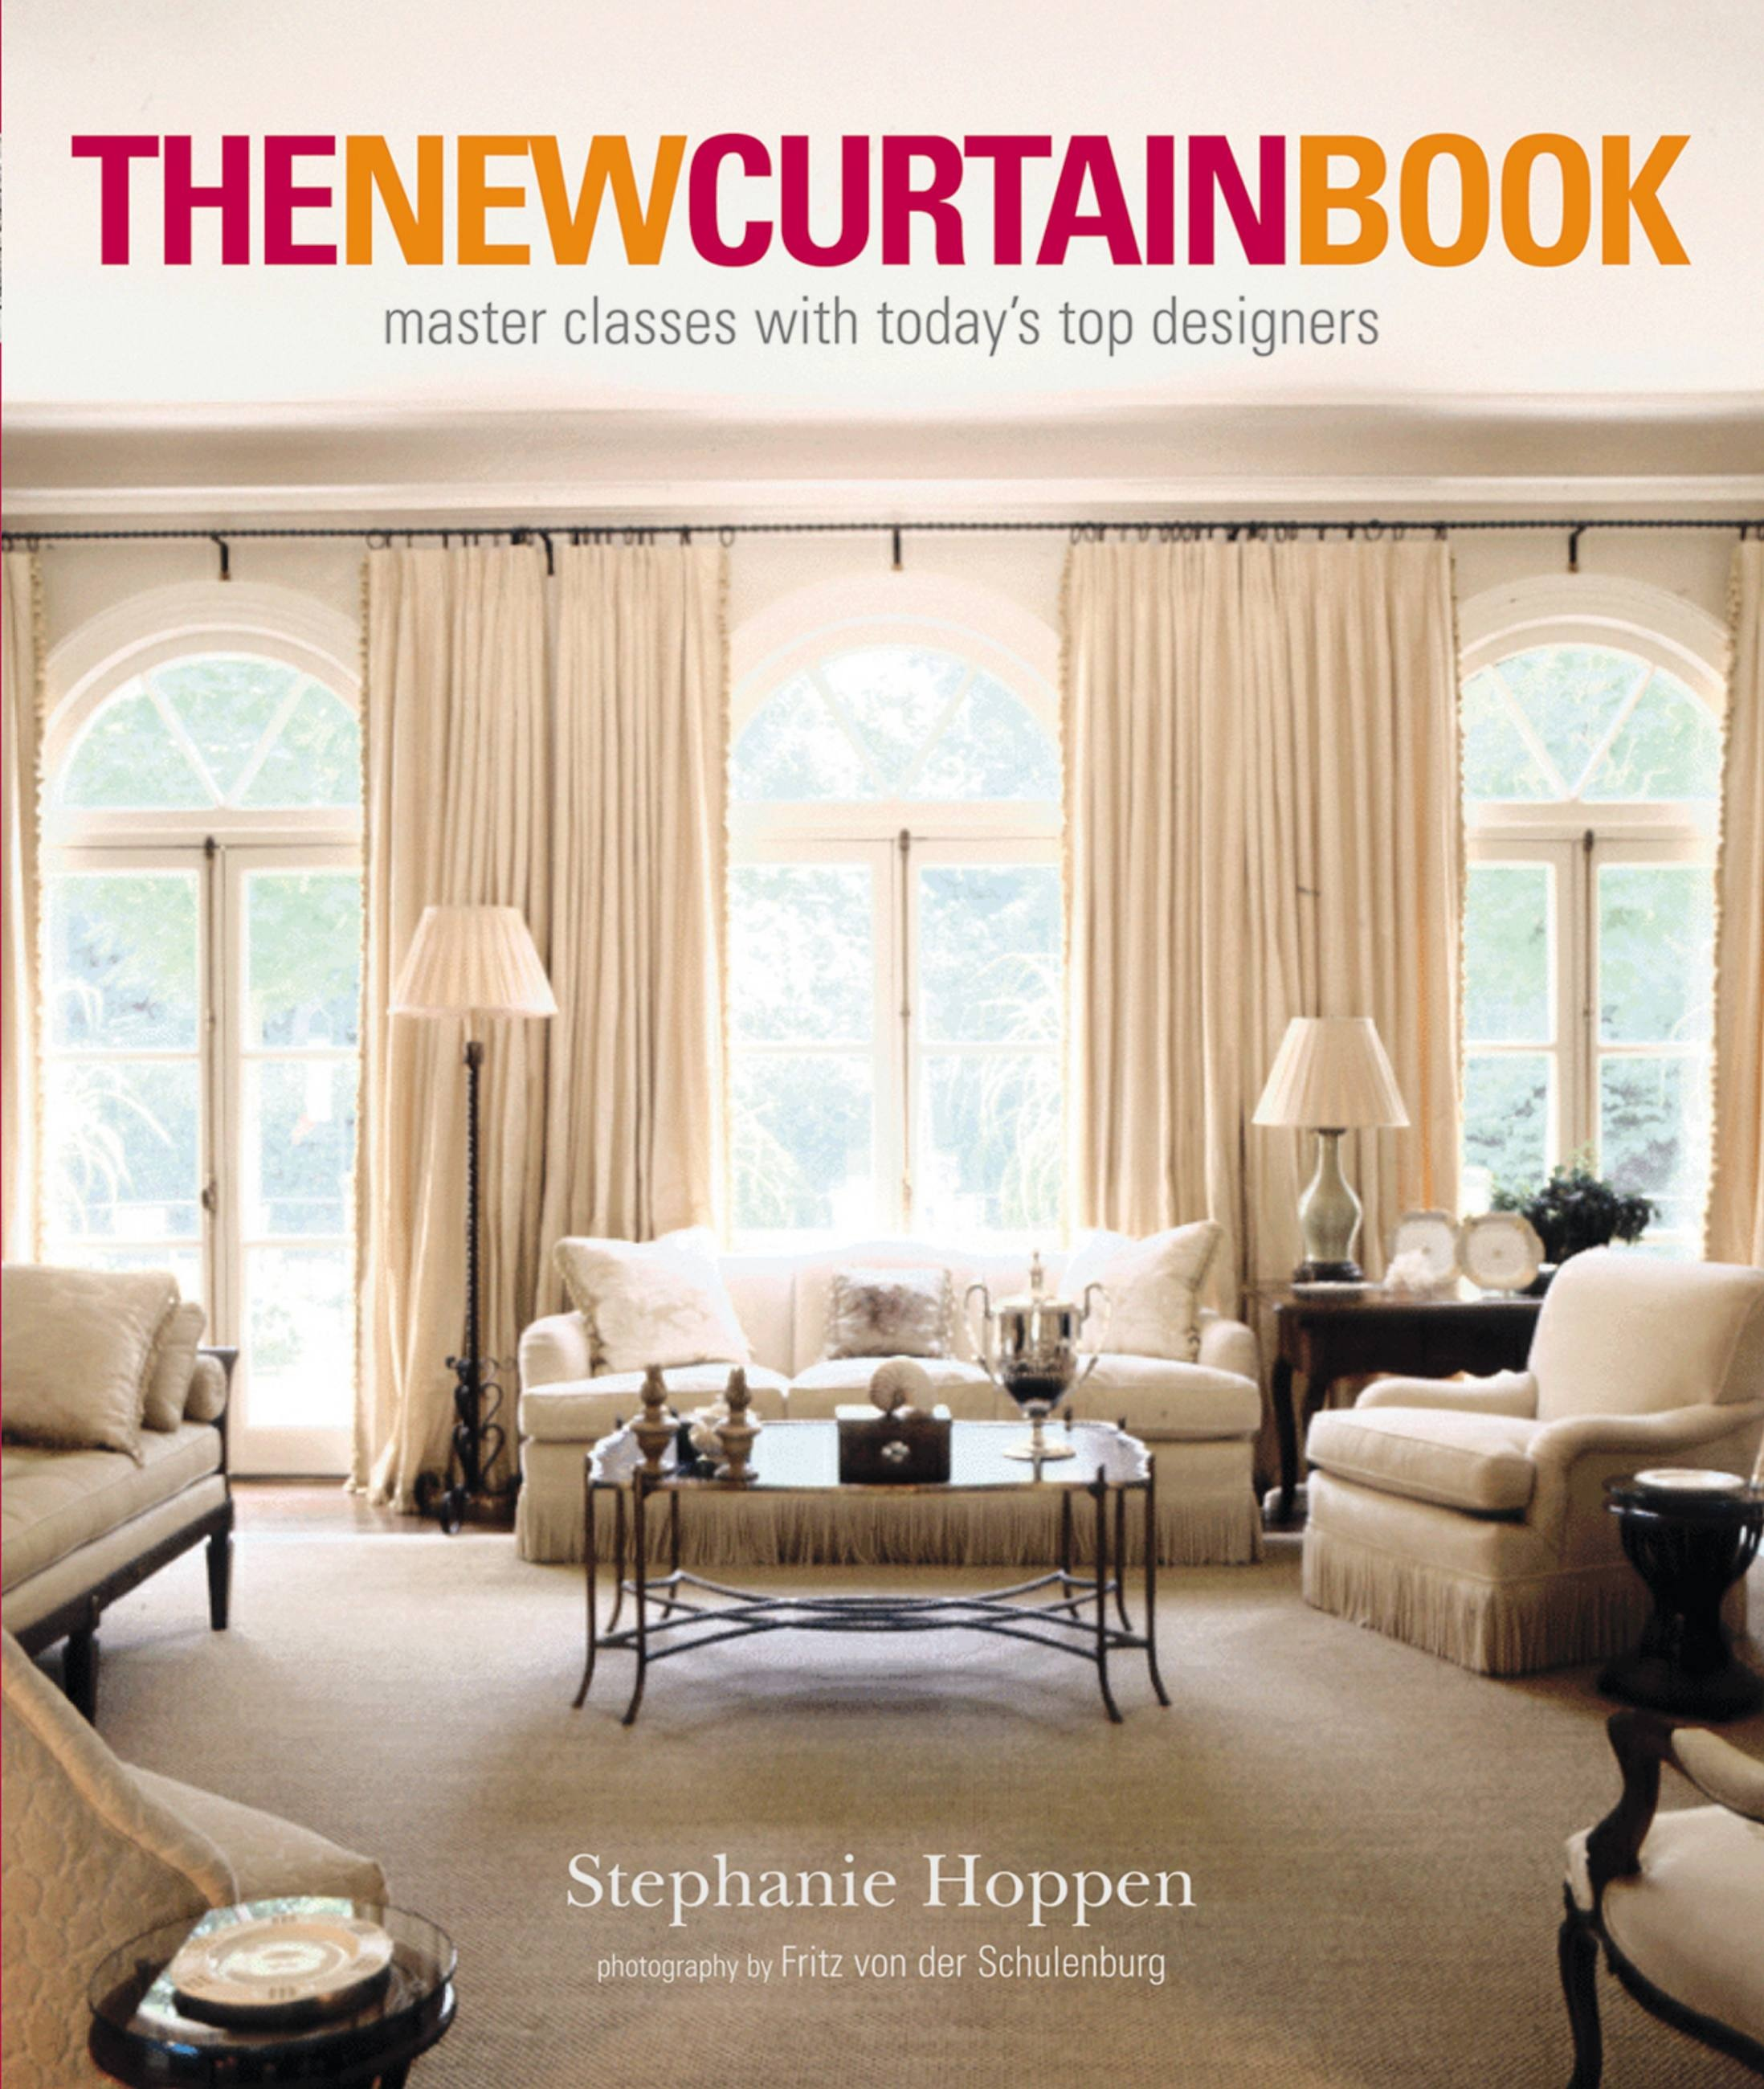 New Curtain Book, The